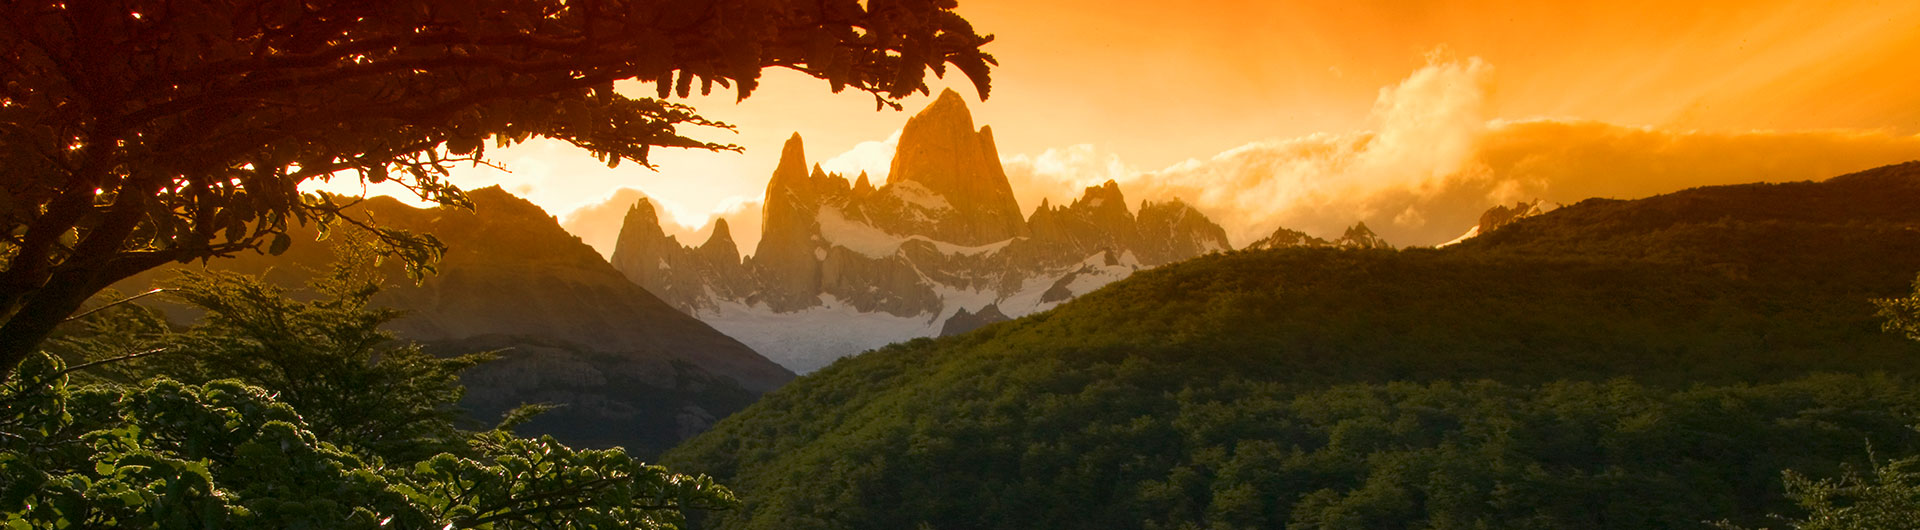 Sunset in Patagonia over Fitz Roy mountains